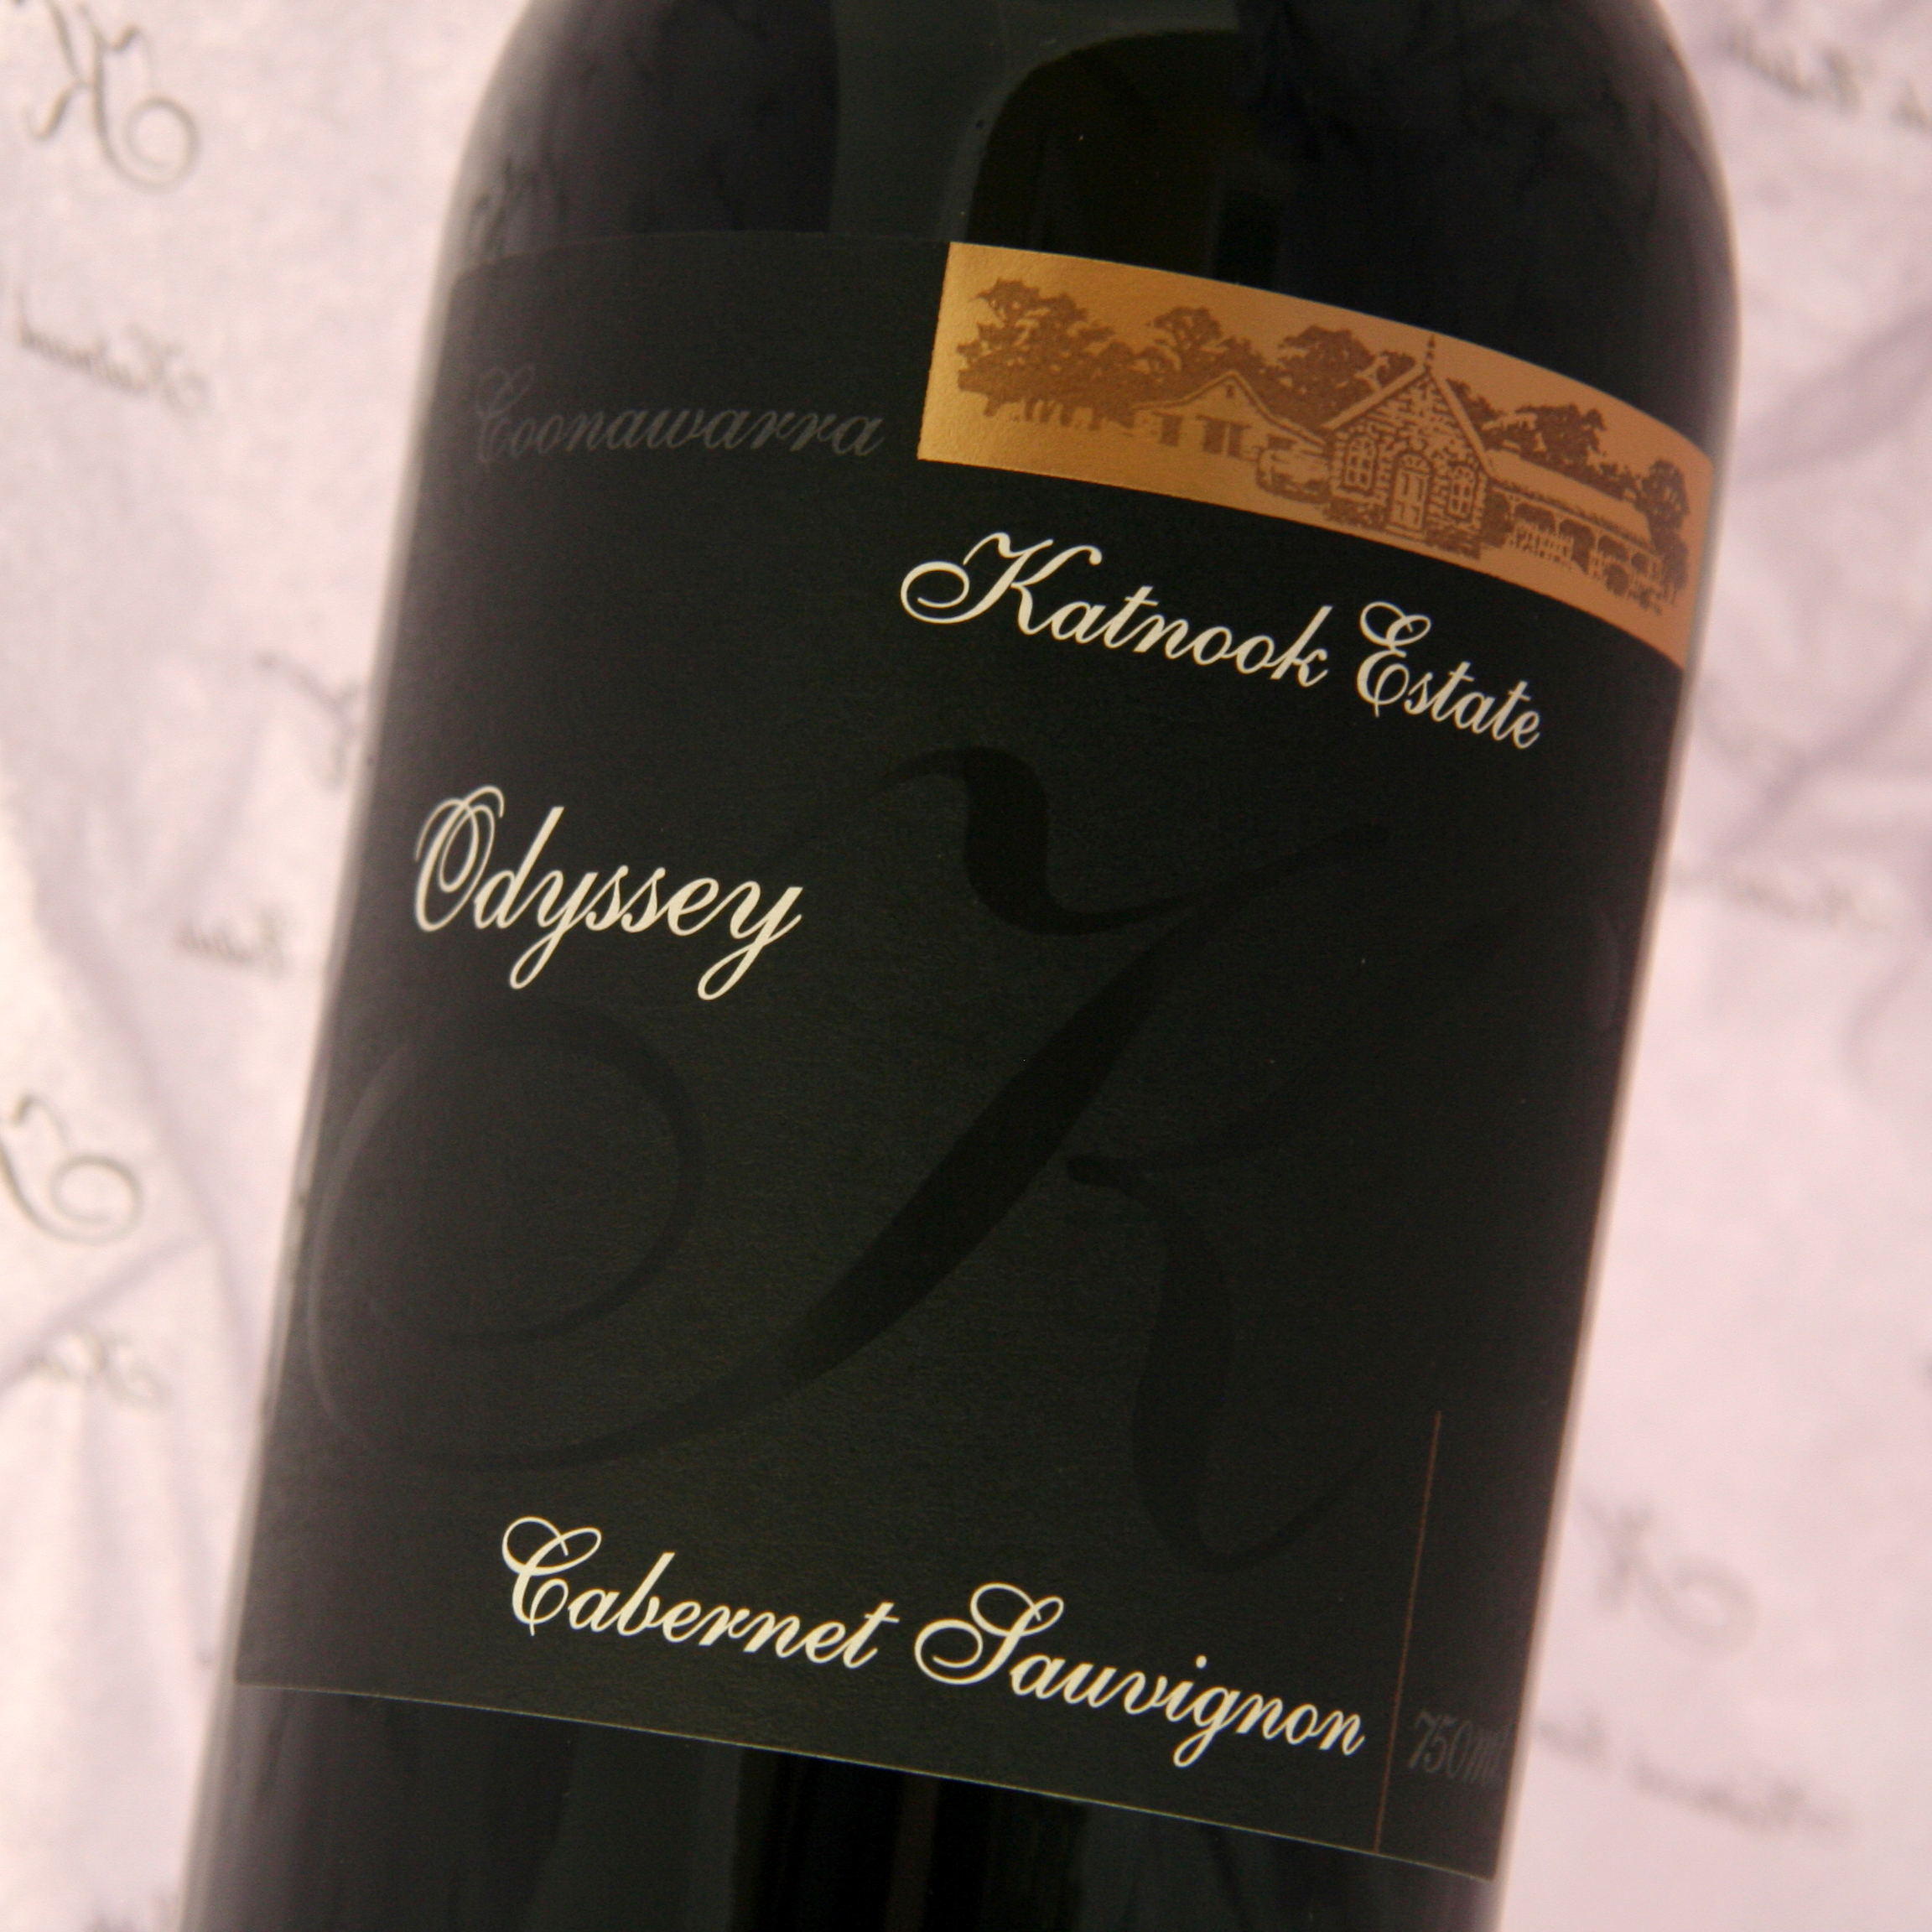 Katnook Estate - Odyssey Cabernet Sauvignon 2010 6x 75cl Bottles